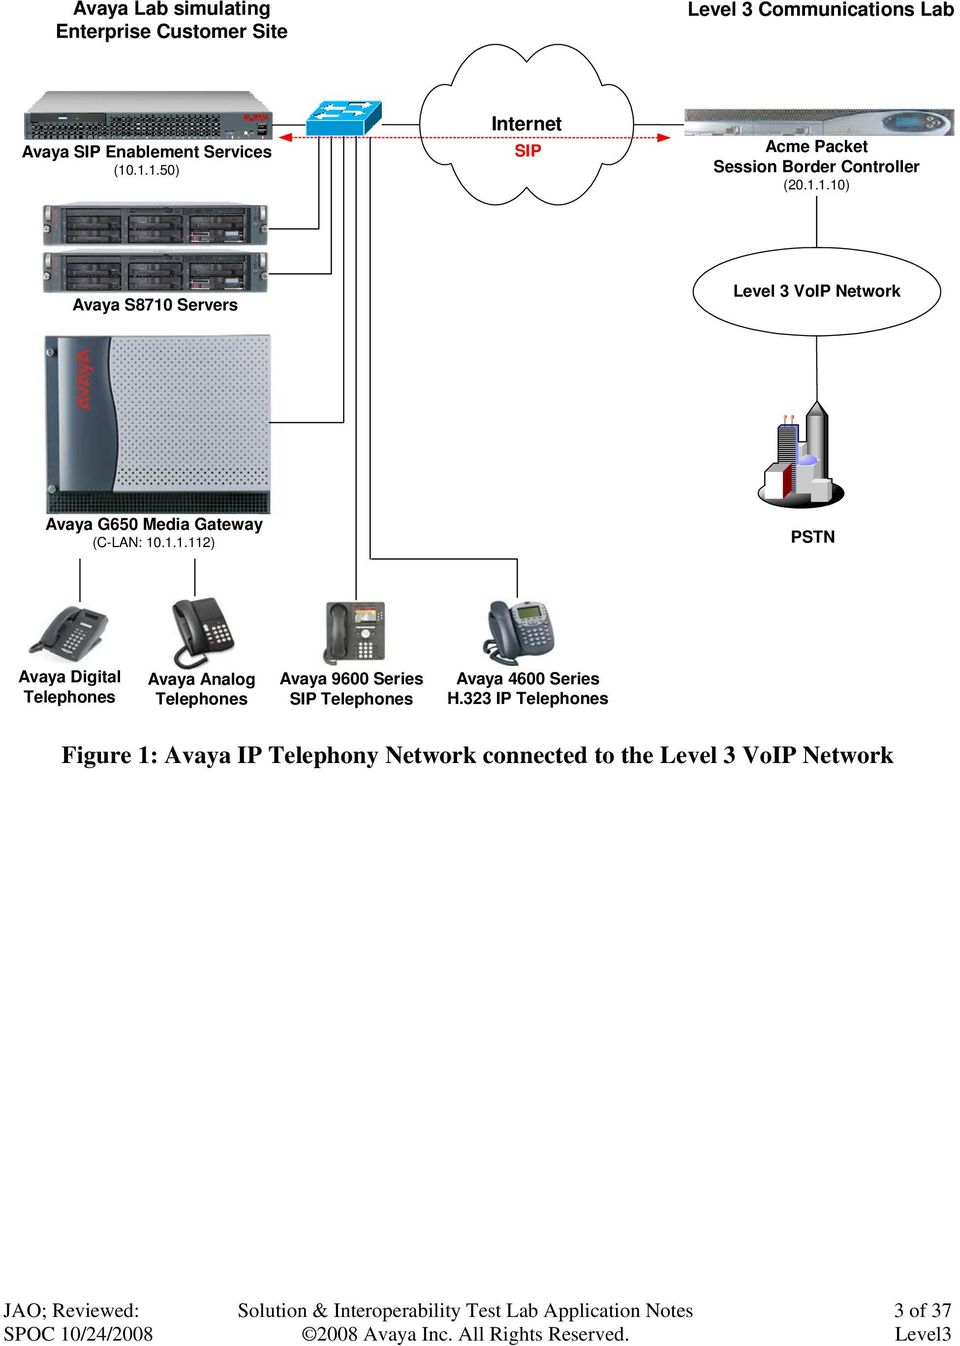 Application Notes for Level 3 Enterprise IP Trunking Service with an